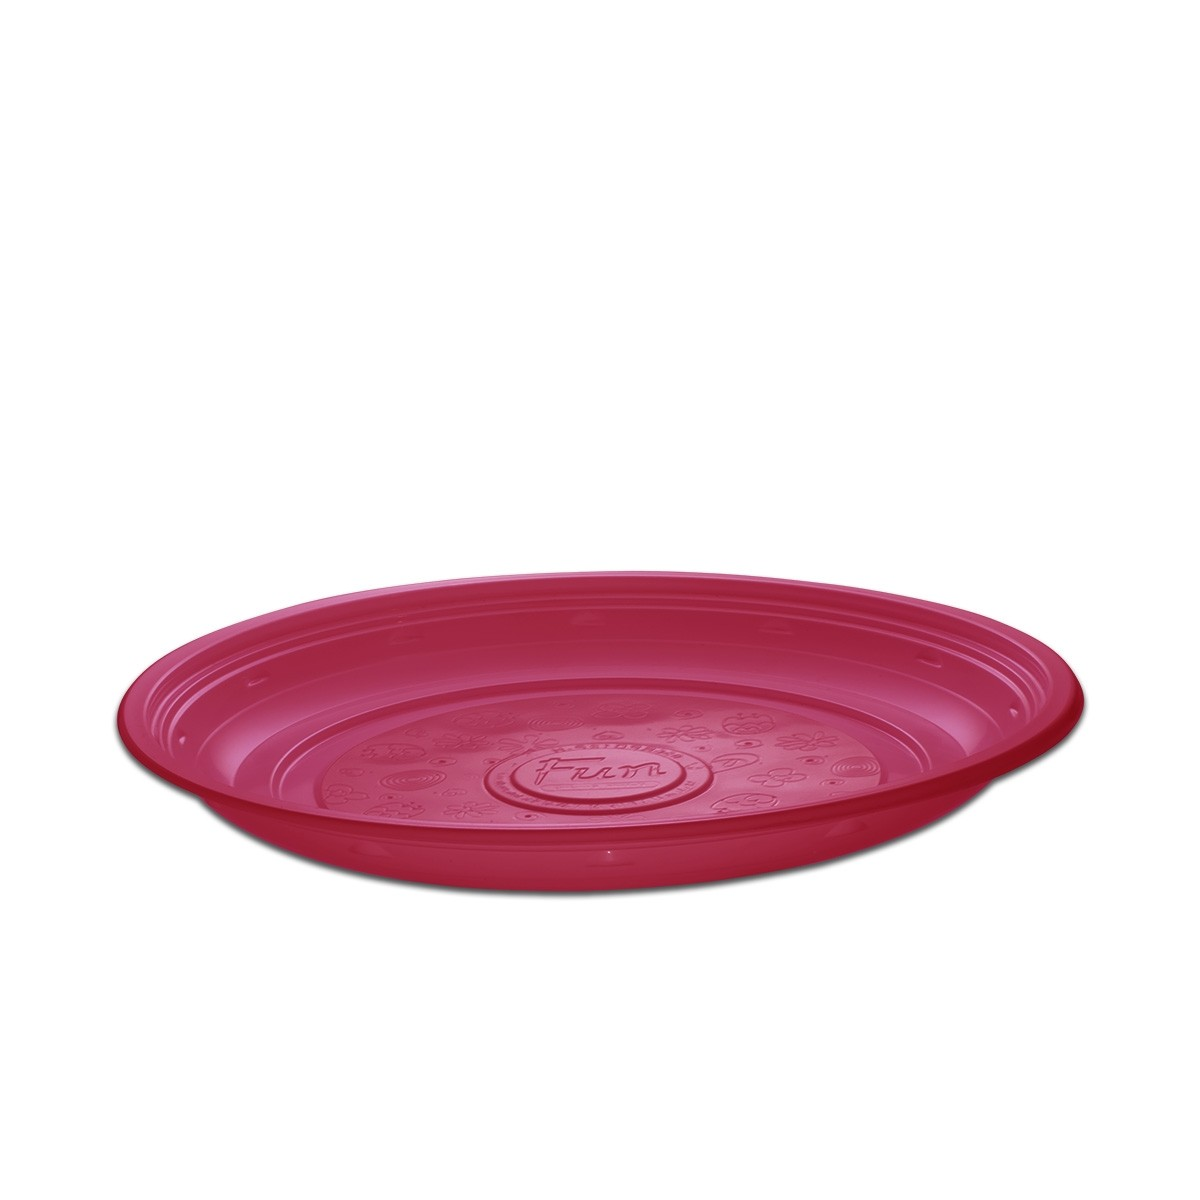 Roundpac Round Plate ⌀26cm - PP/Pink Deluxe | 25pcsx10pkts